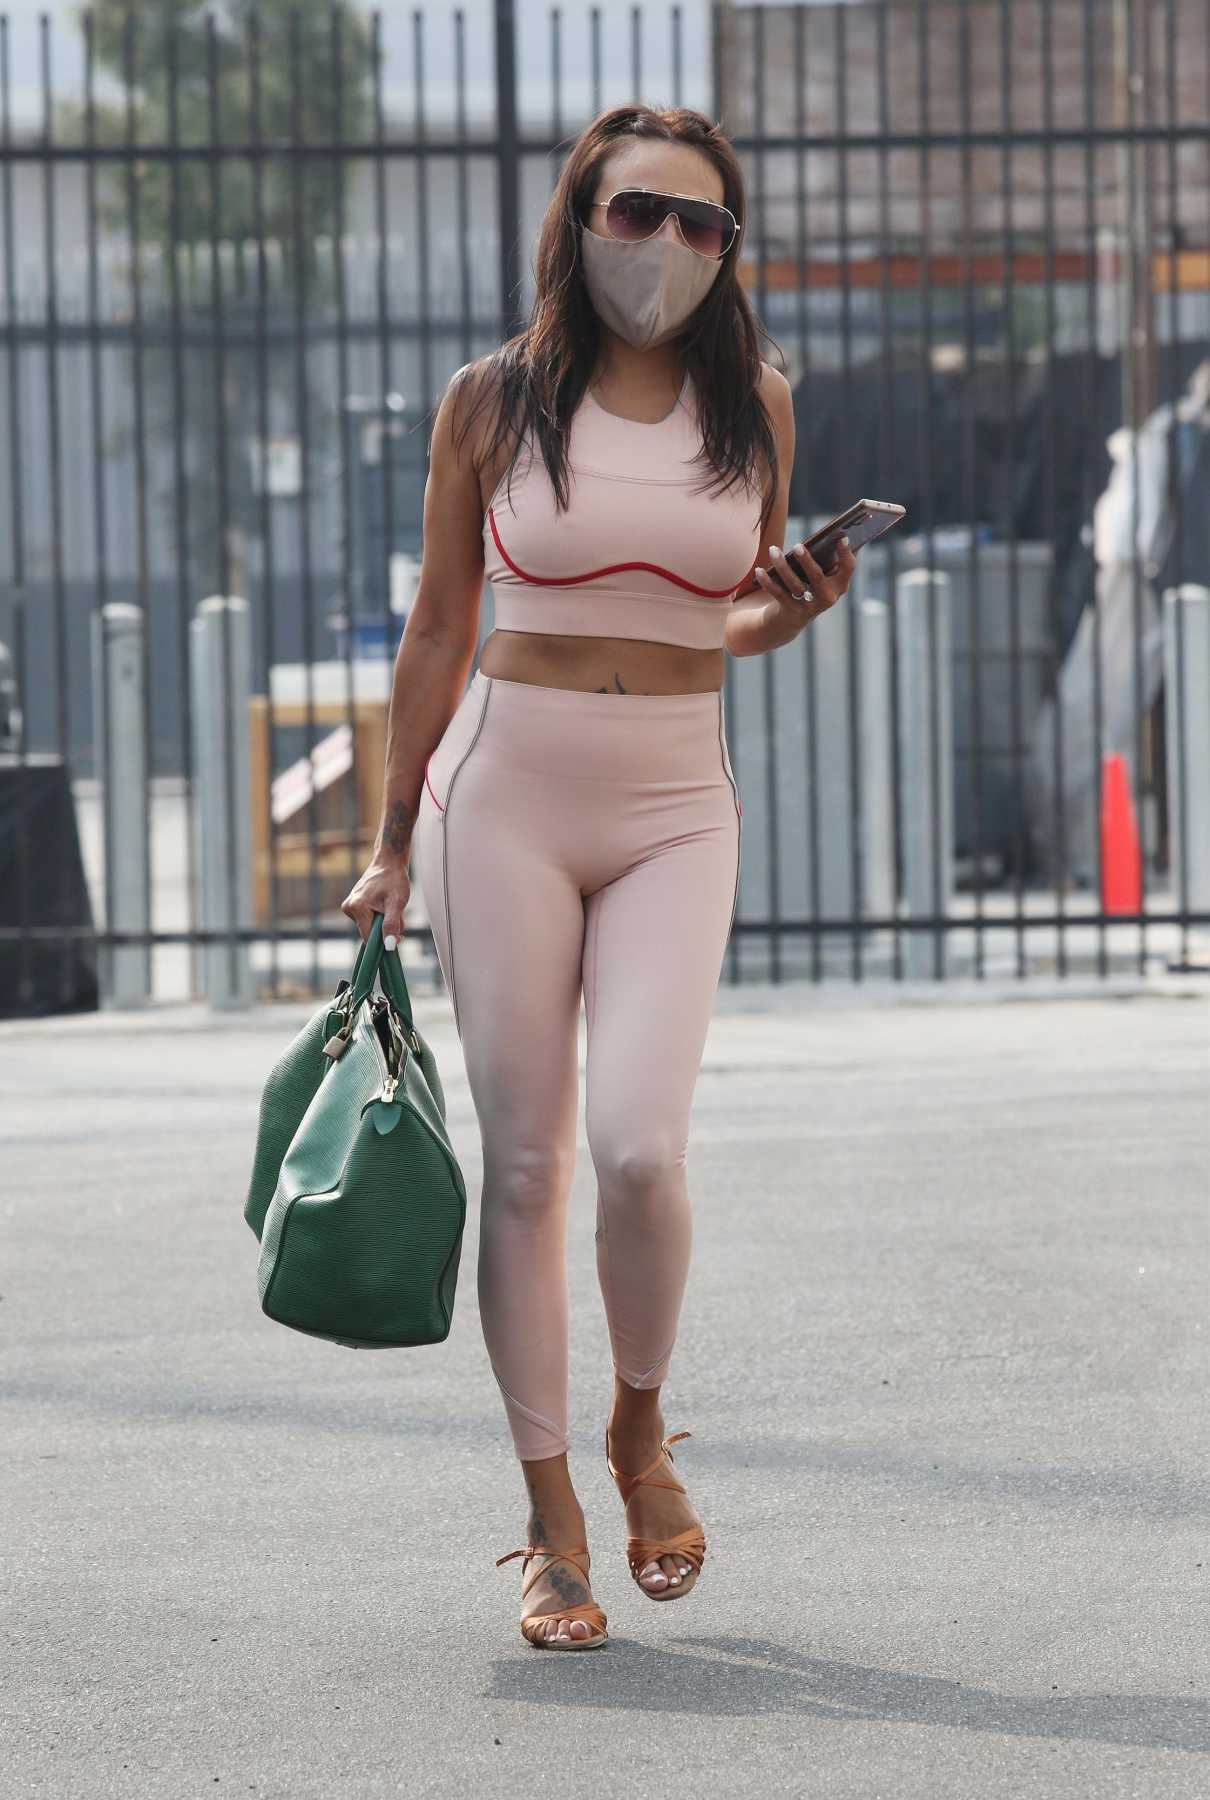 Jeannie Mai in a Beige Exercise Outfit